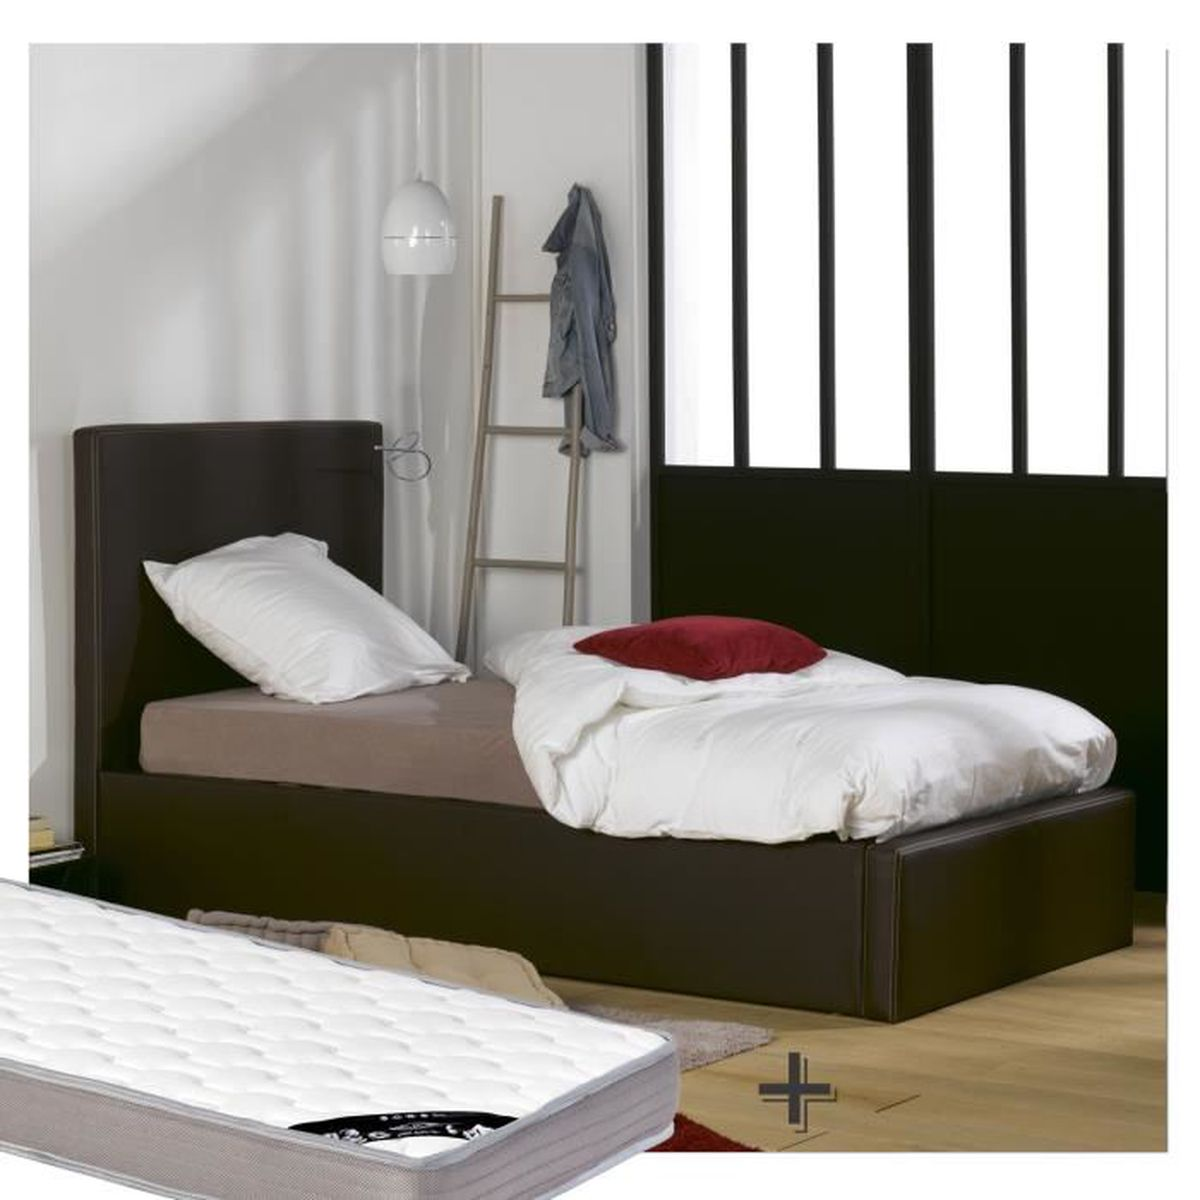 lit coffre 90x200 matelas similicuir marron achat vente lit complet lit coffre 90x200. Black Bedroom Furniture Sets. Home Design Ideas